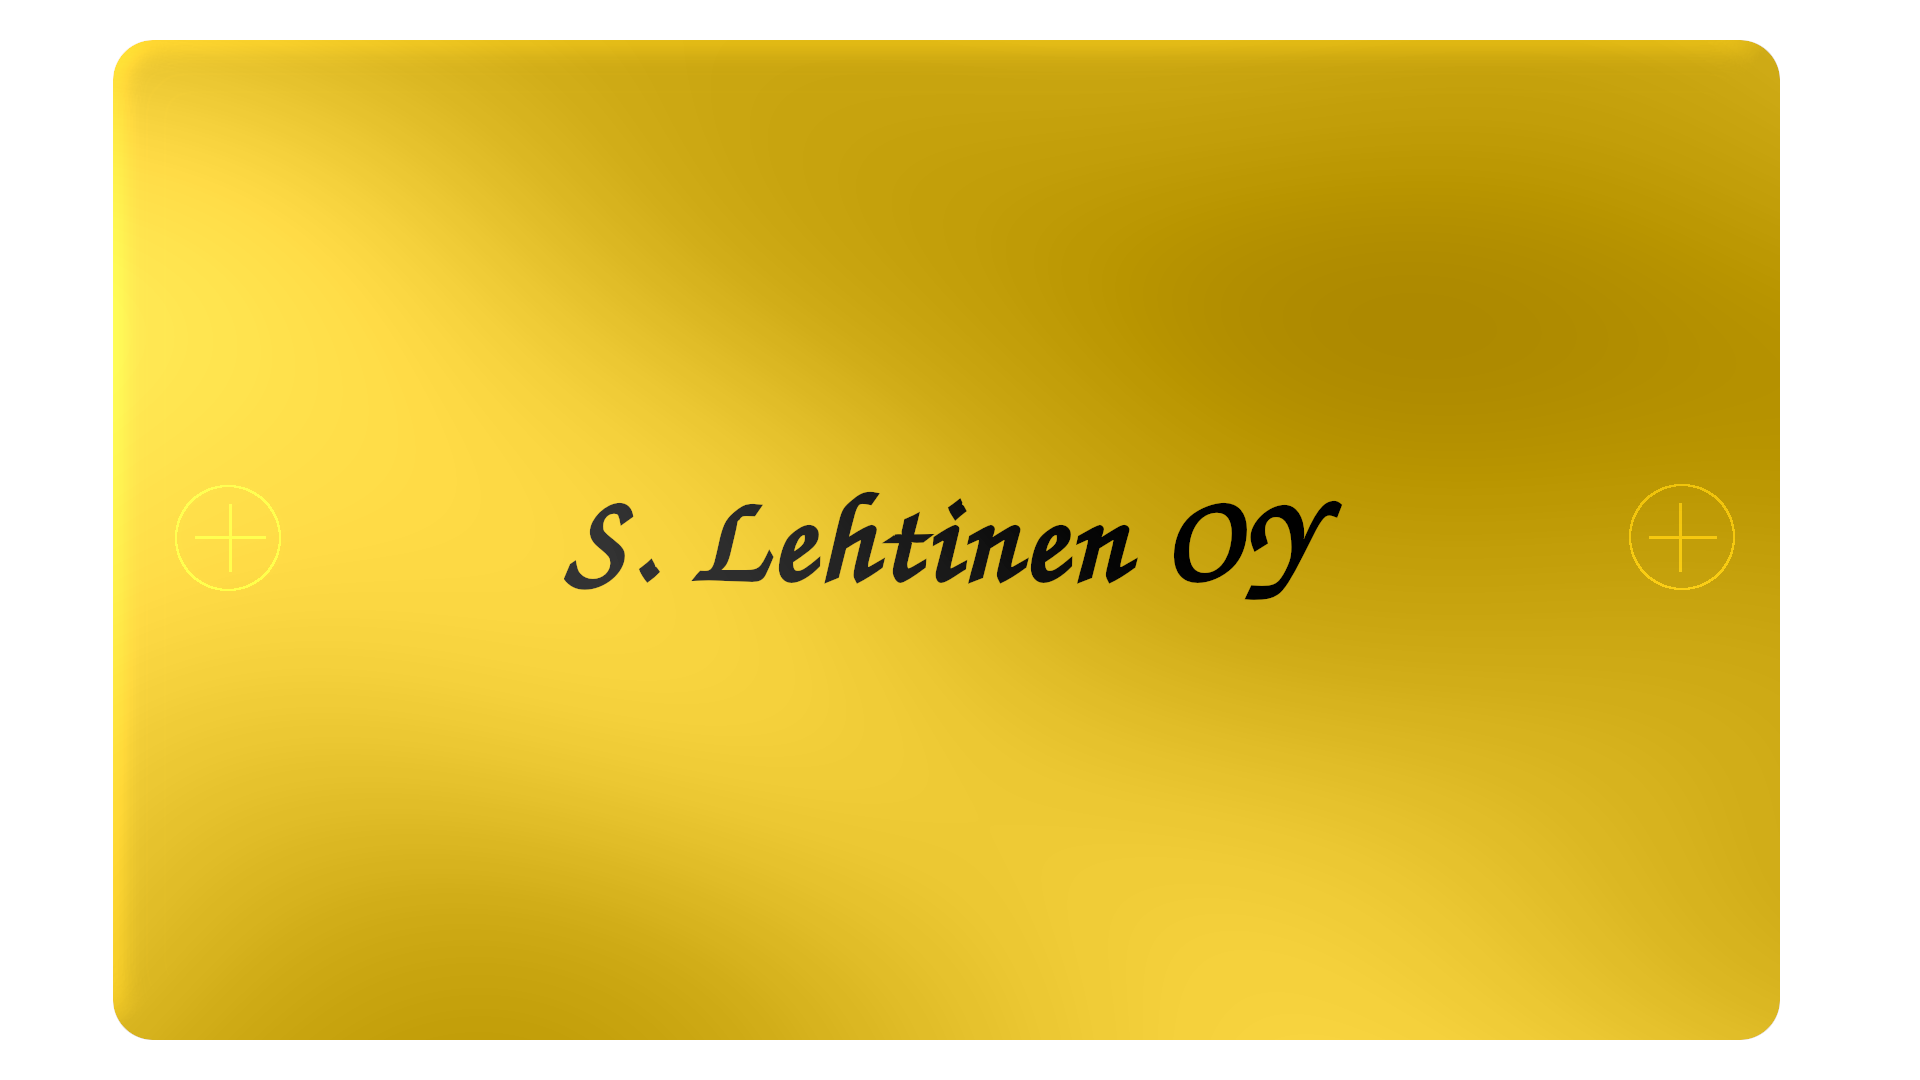 plate_S.Lehtinen Oy.png